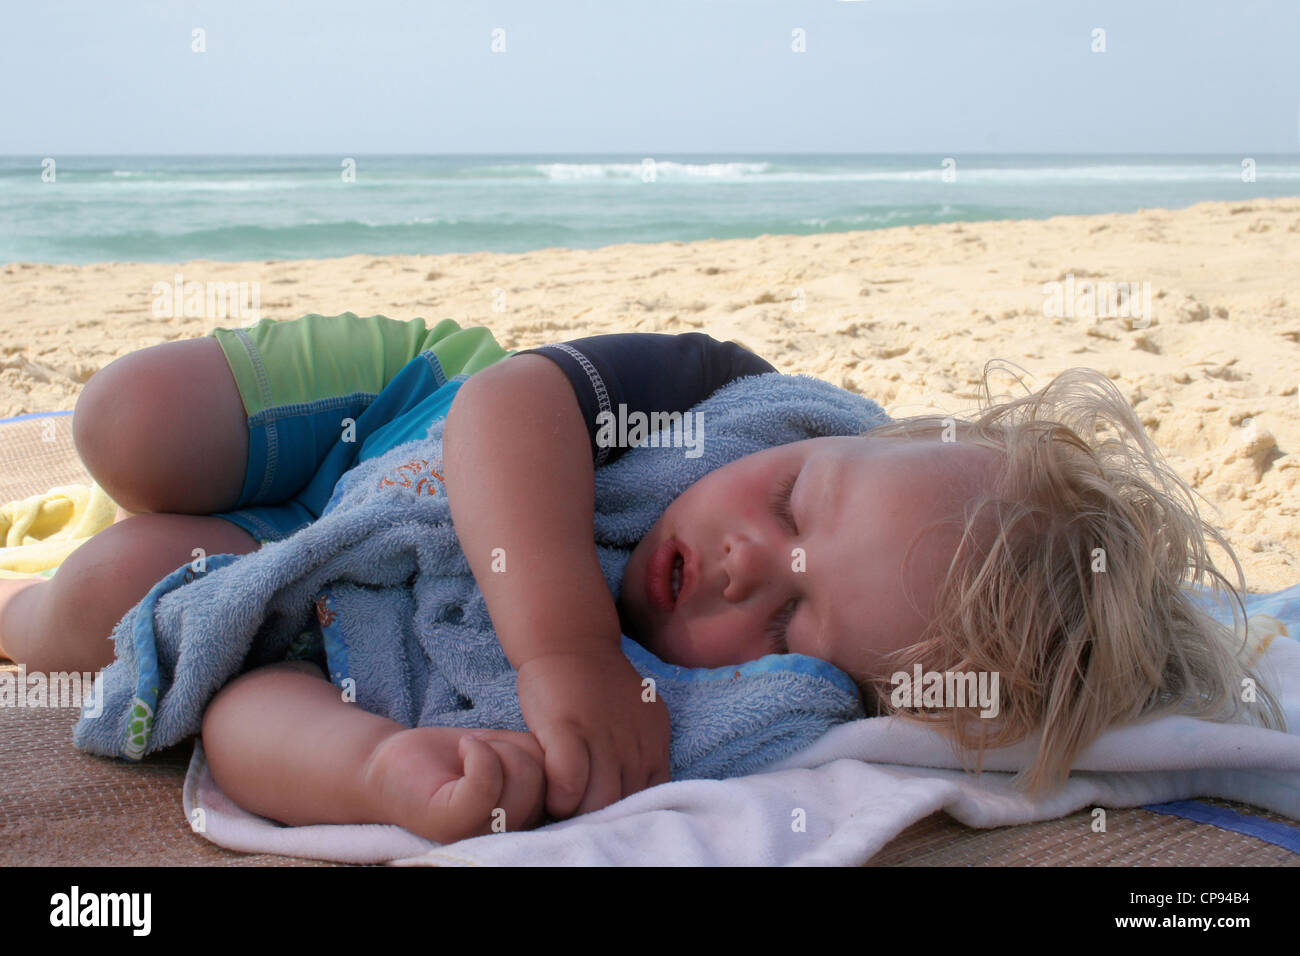 Little boy takes a nap on the beach during the summer holiday - Stock Image